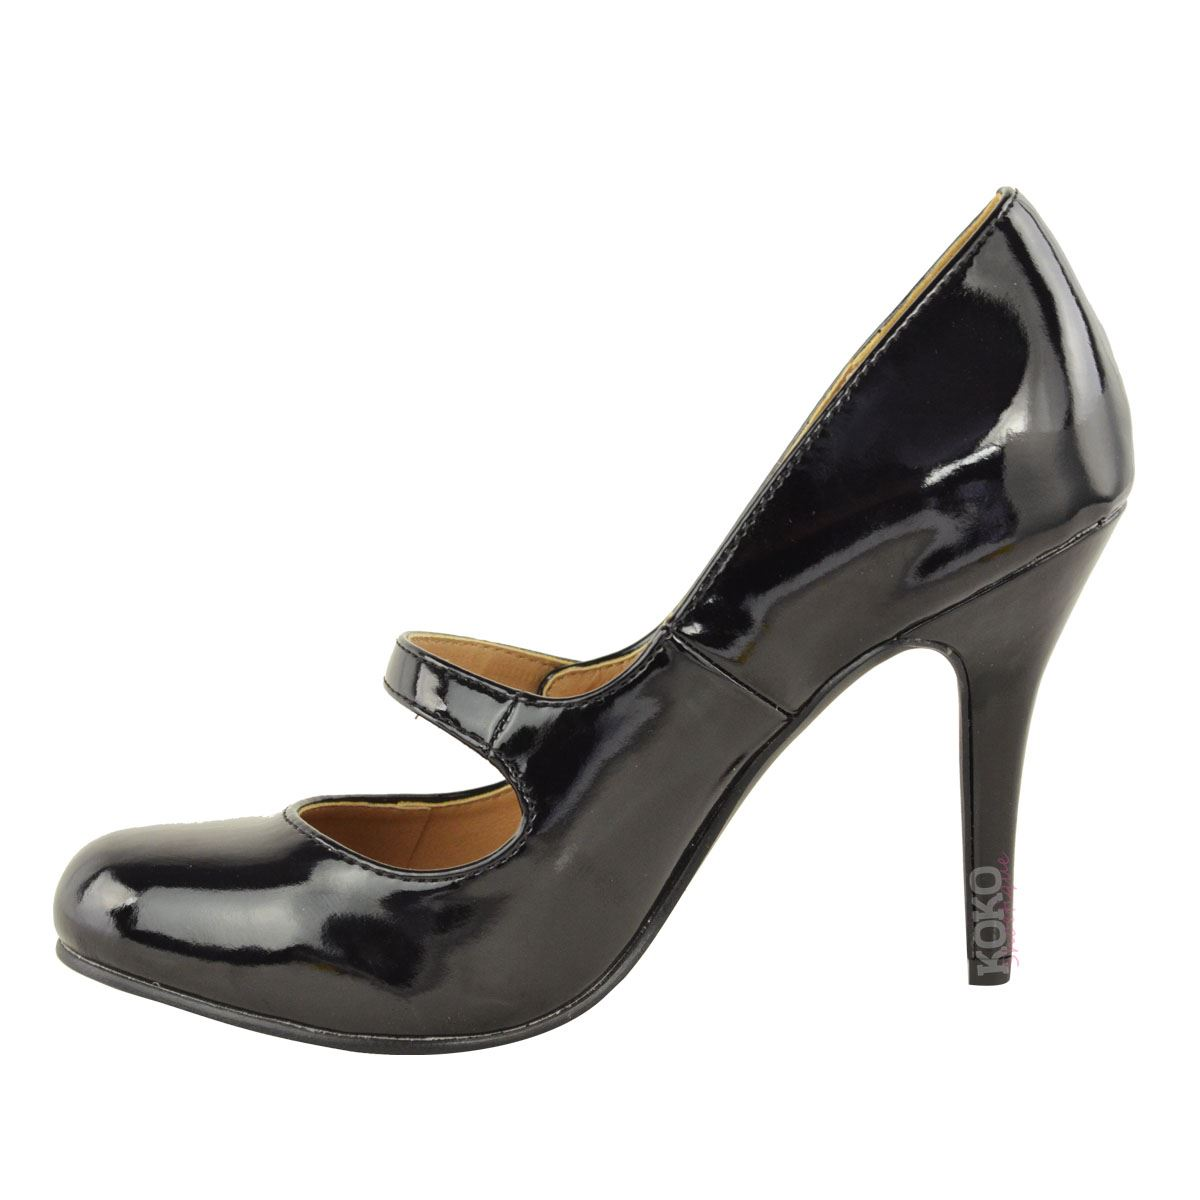 damen pumps mit high heels riemchen absatz hoch ebay. Black Bedroom Furniture Sets. Home Design Ideas